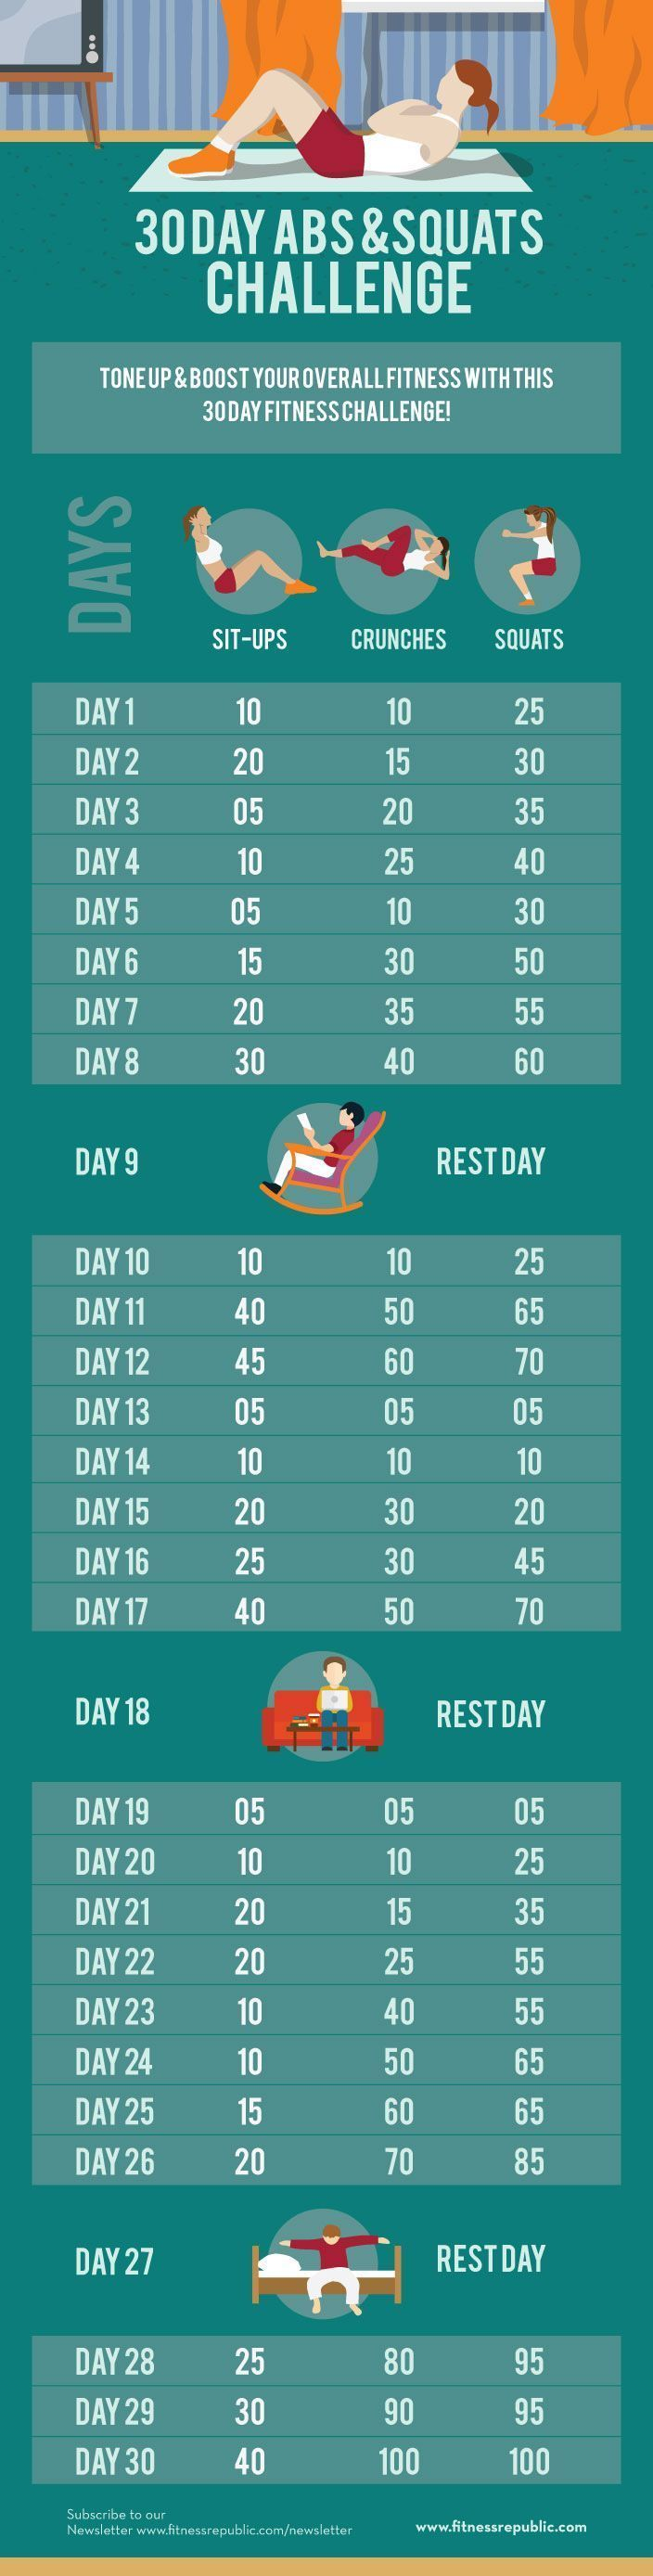 Abs And Squats Challenge -  - Squat challenge 30 day -